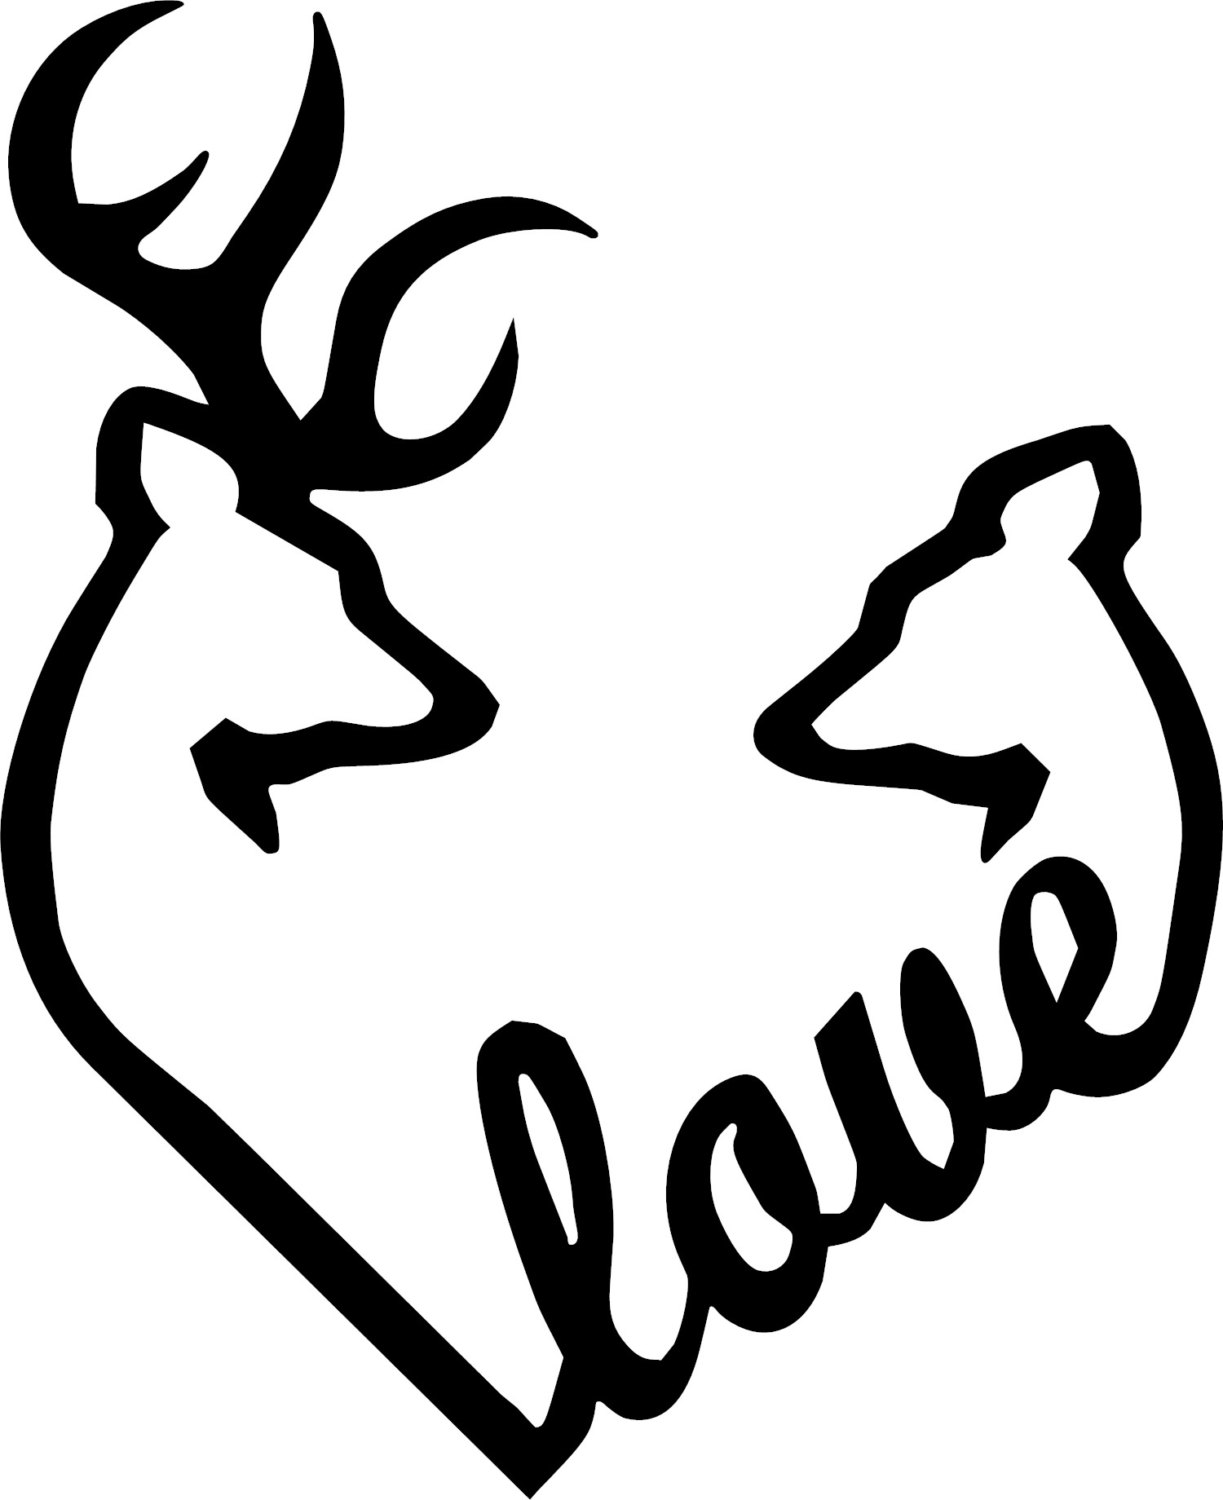 Browning Love Heart Deer Buck And Doe Vinyl Decal By Dinksplace